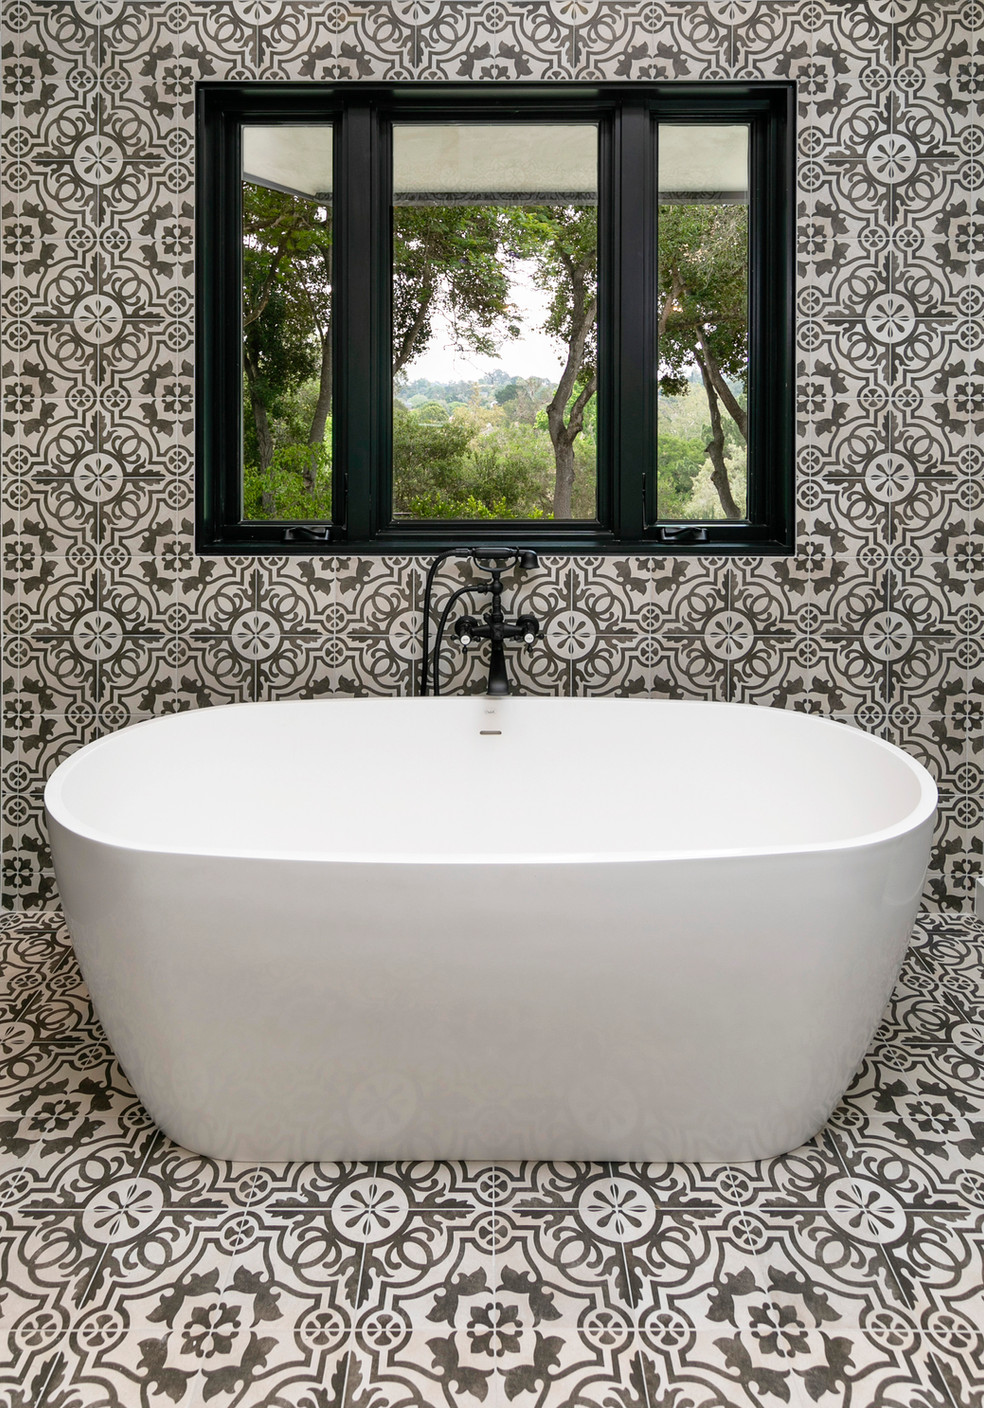 Freestanding soaking tub with patterened tile floor and wall in black and white with black window frame